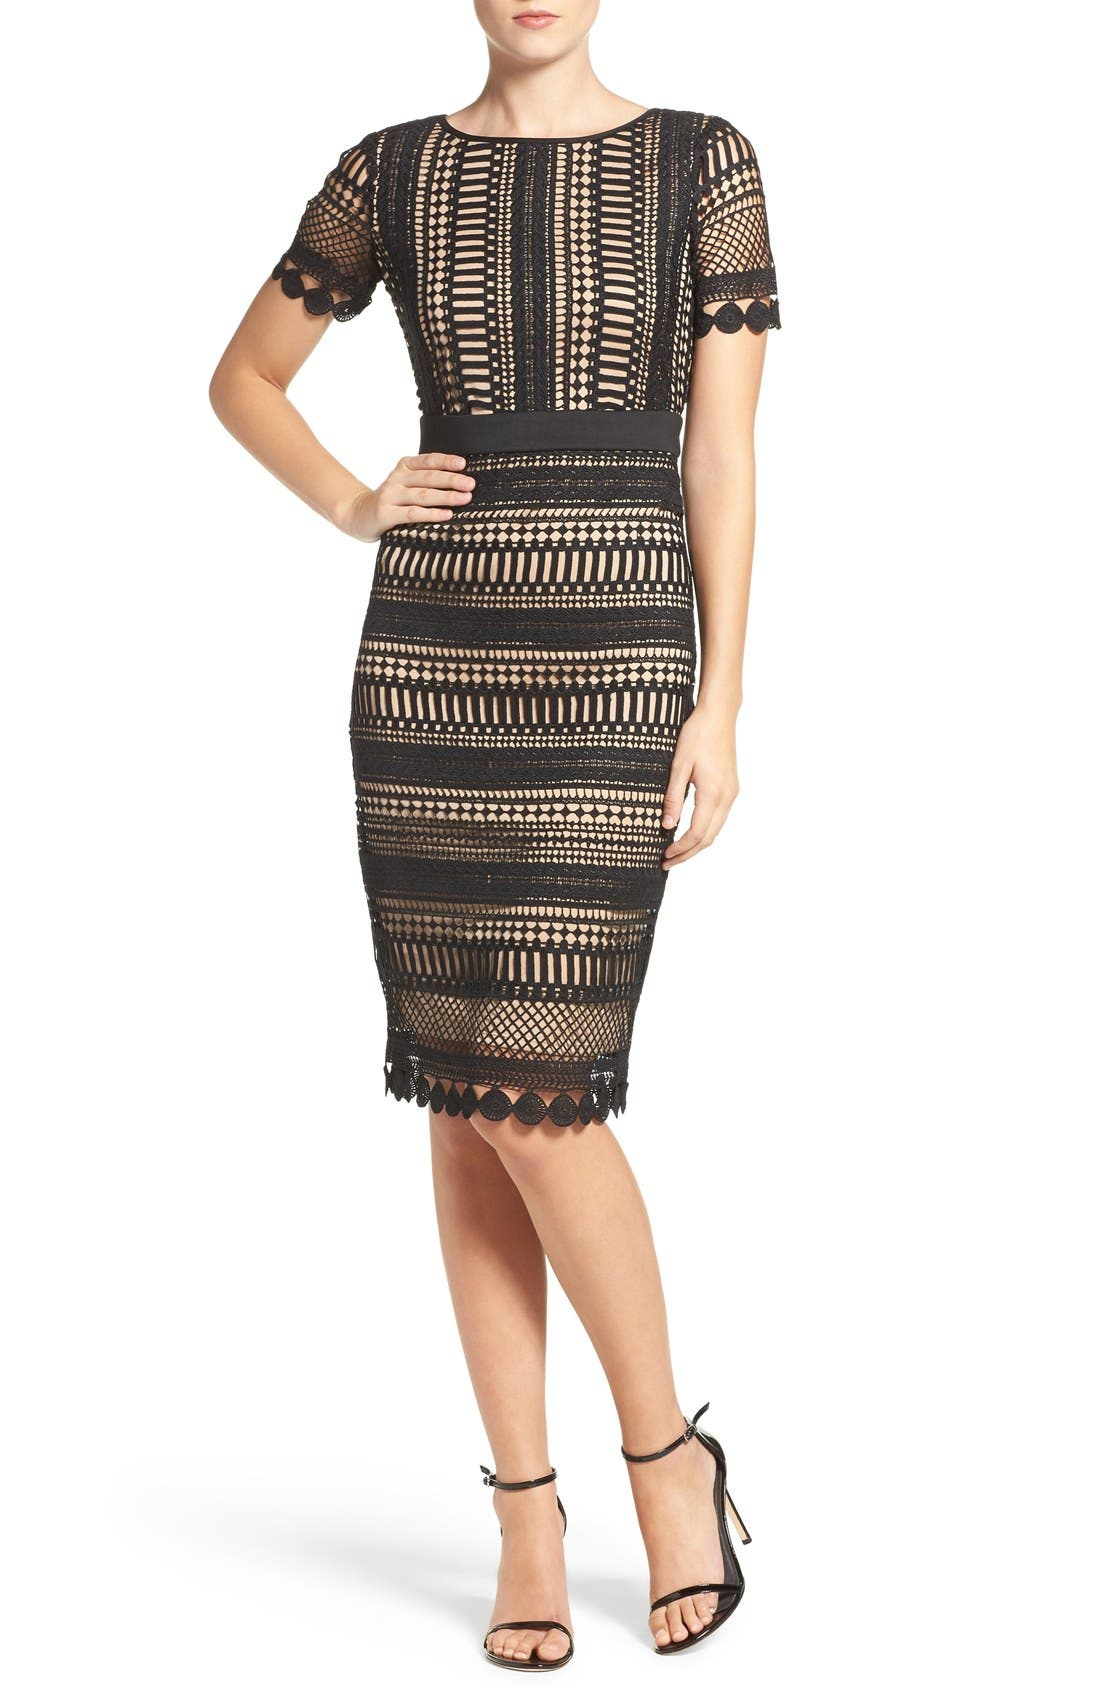 Alternate Image 1 Selected - Gabby Skye Embroidered Lace Shift Dress